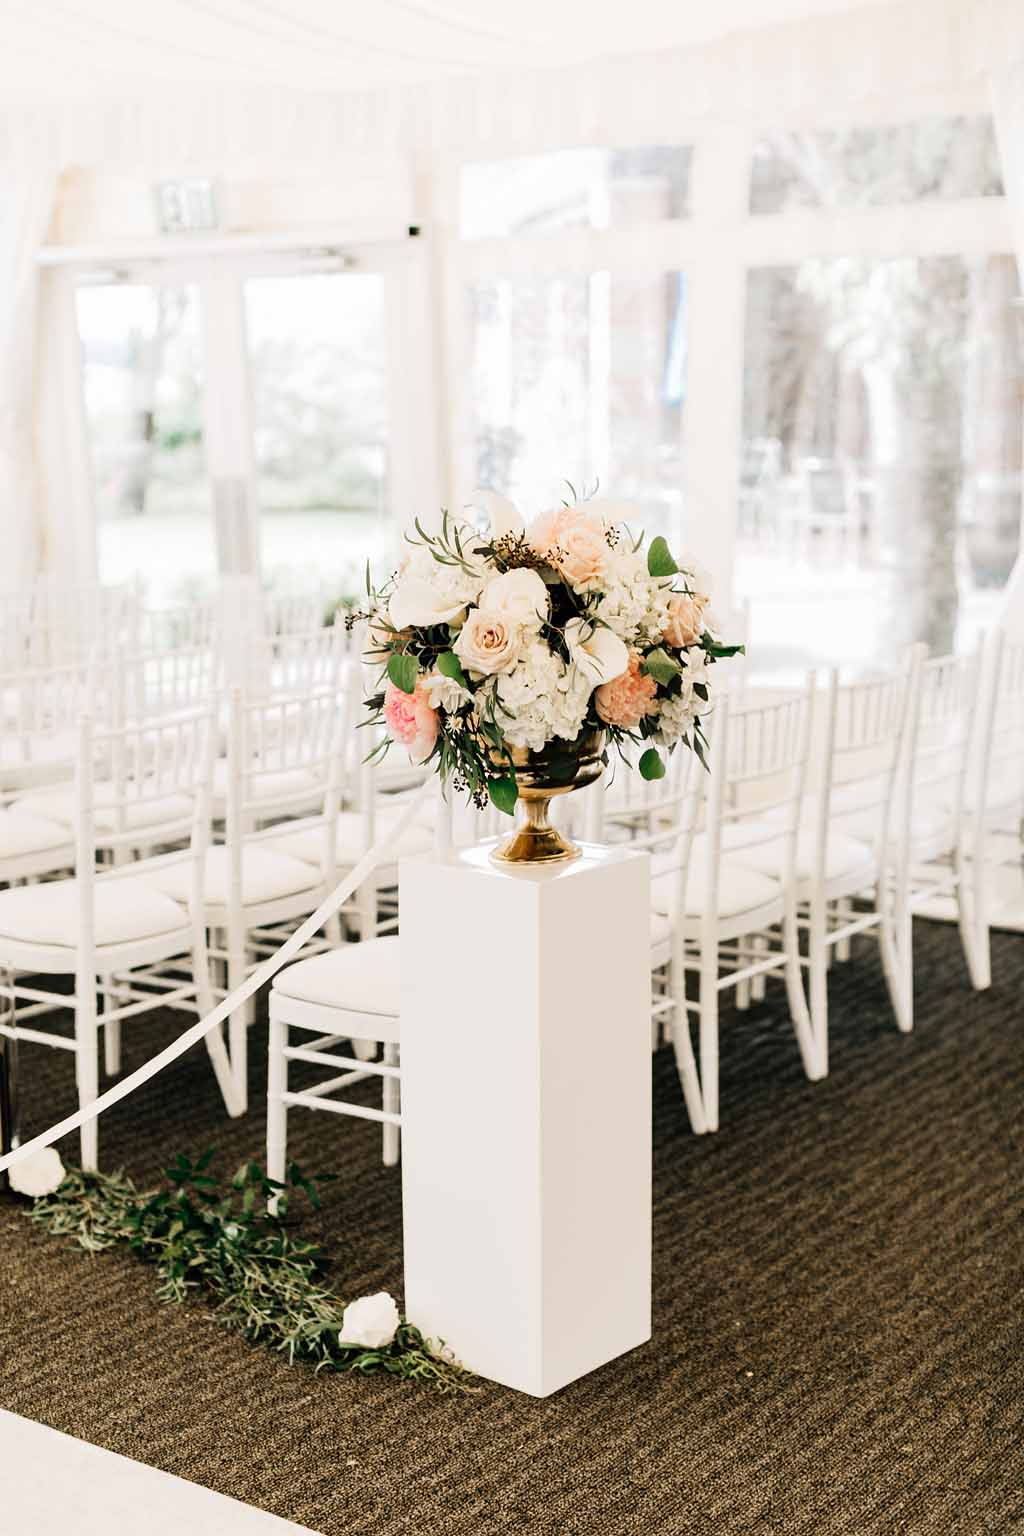 Aisle entry arrangement of spring flowers in gold compote vase propped onto white pedestal